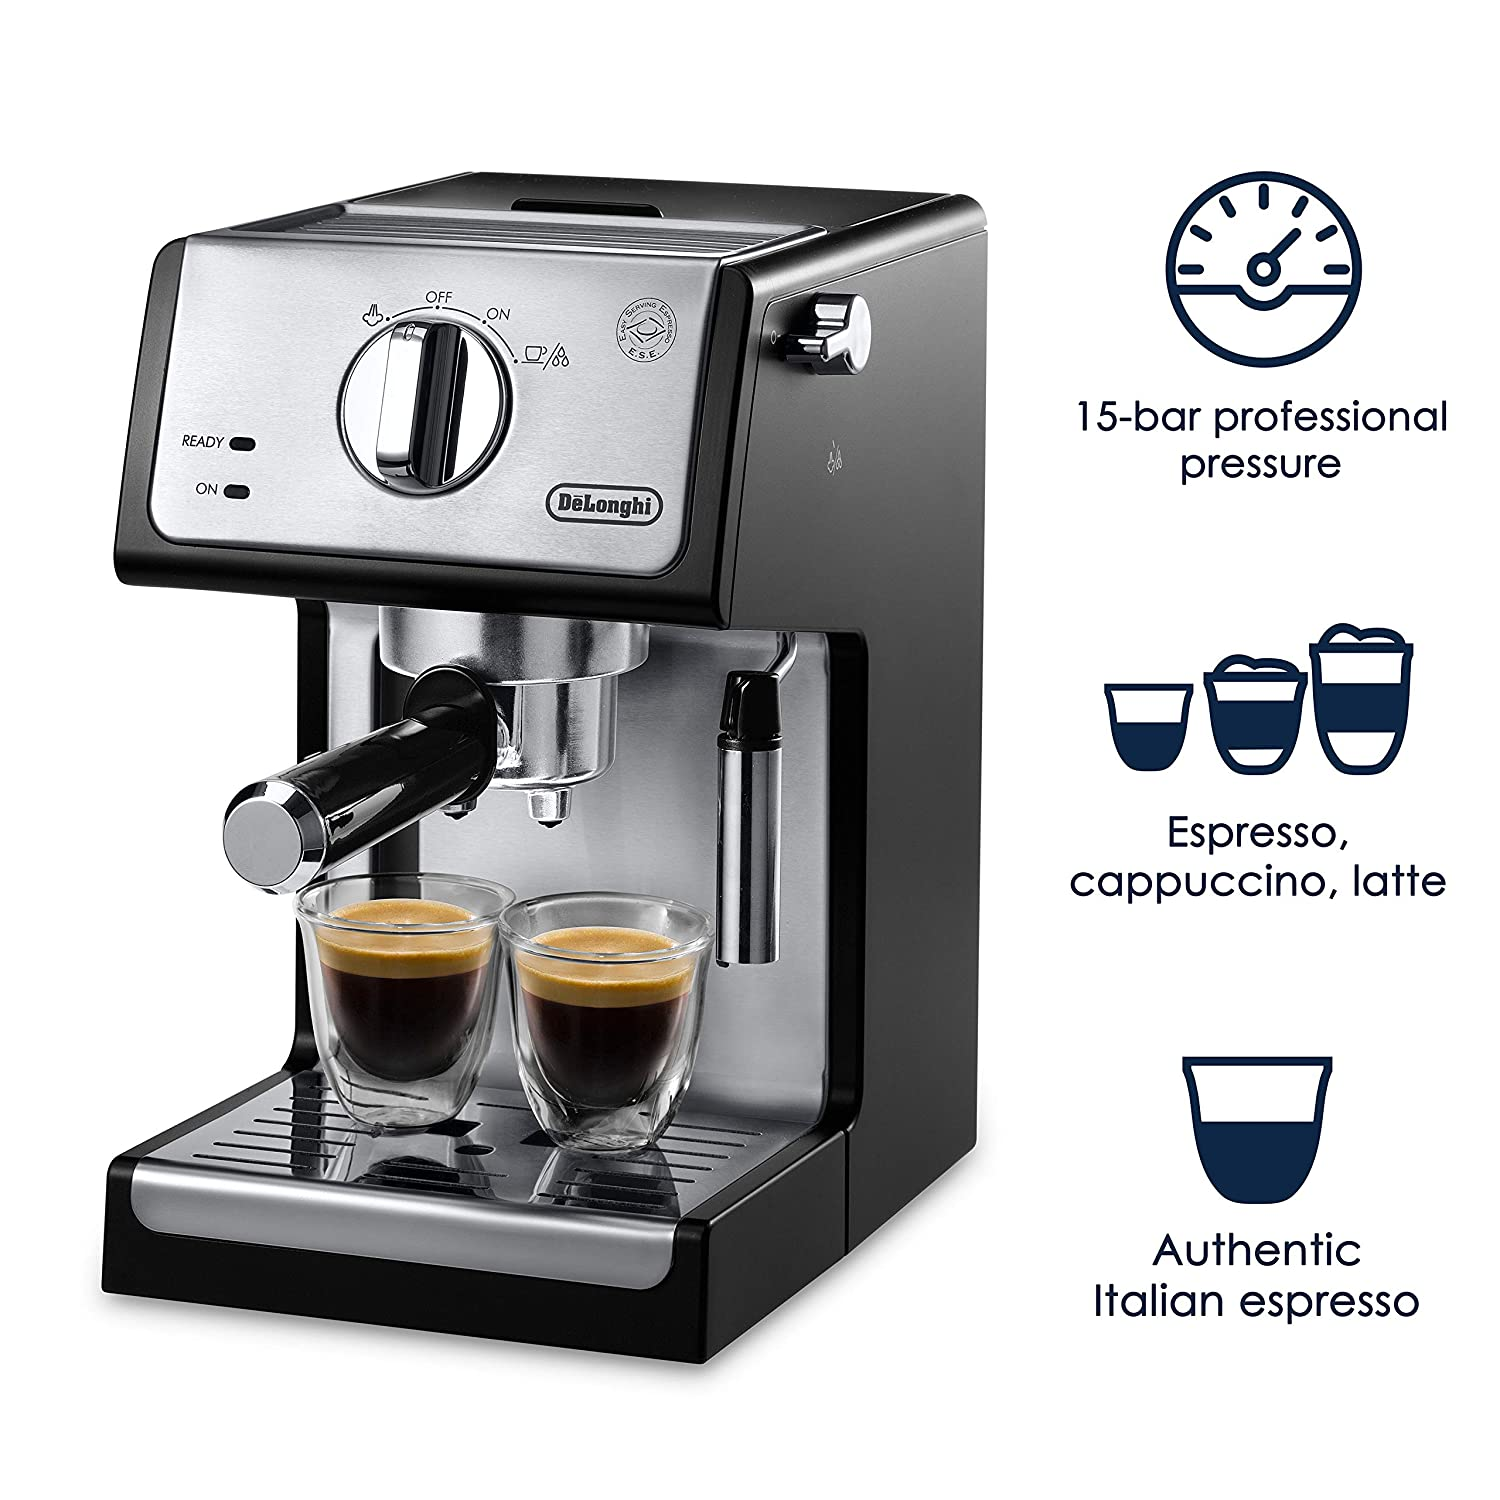 Amazon.com: DeLonghi ECP3420 Bar Pump Espresso and Cappuccino Machine 15